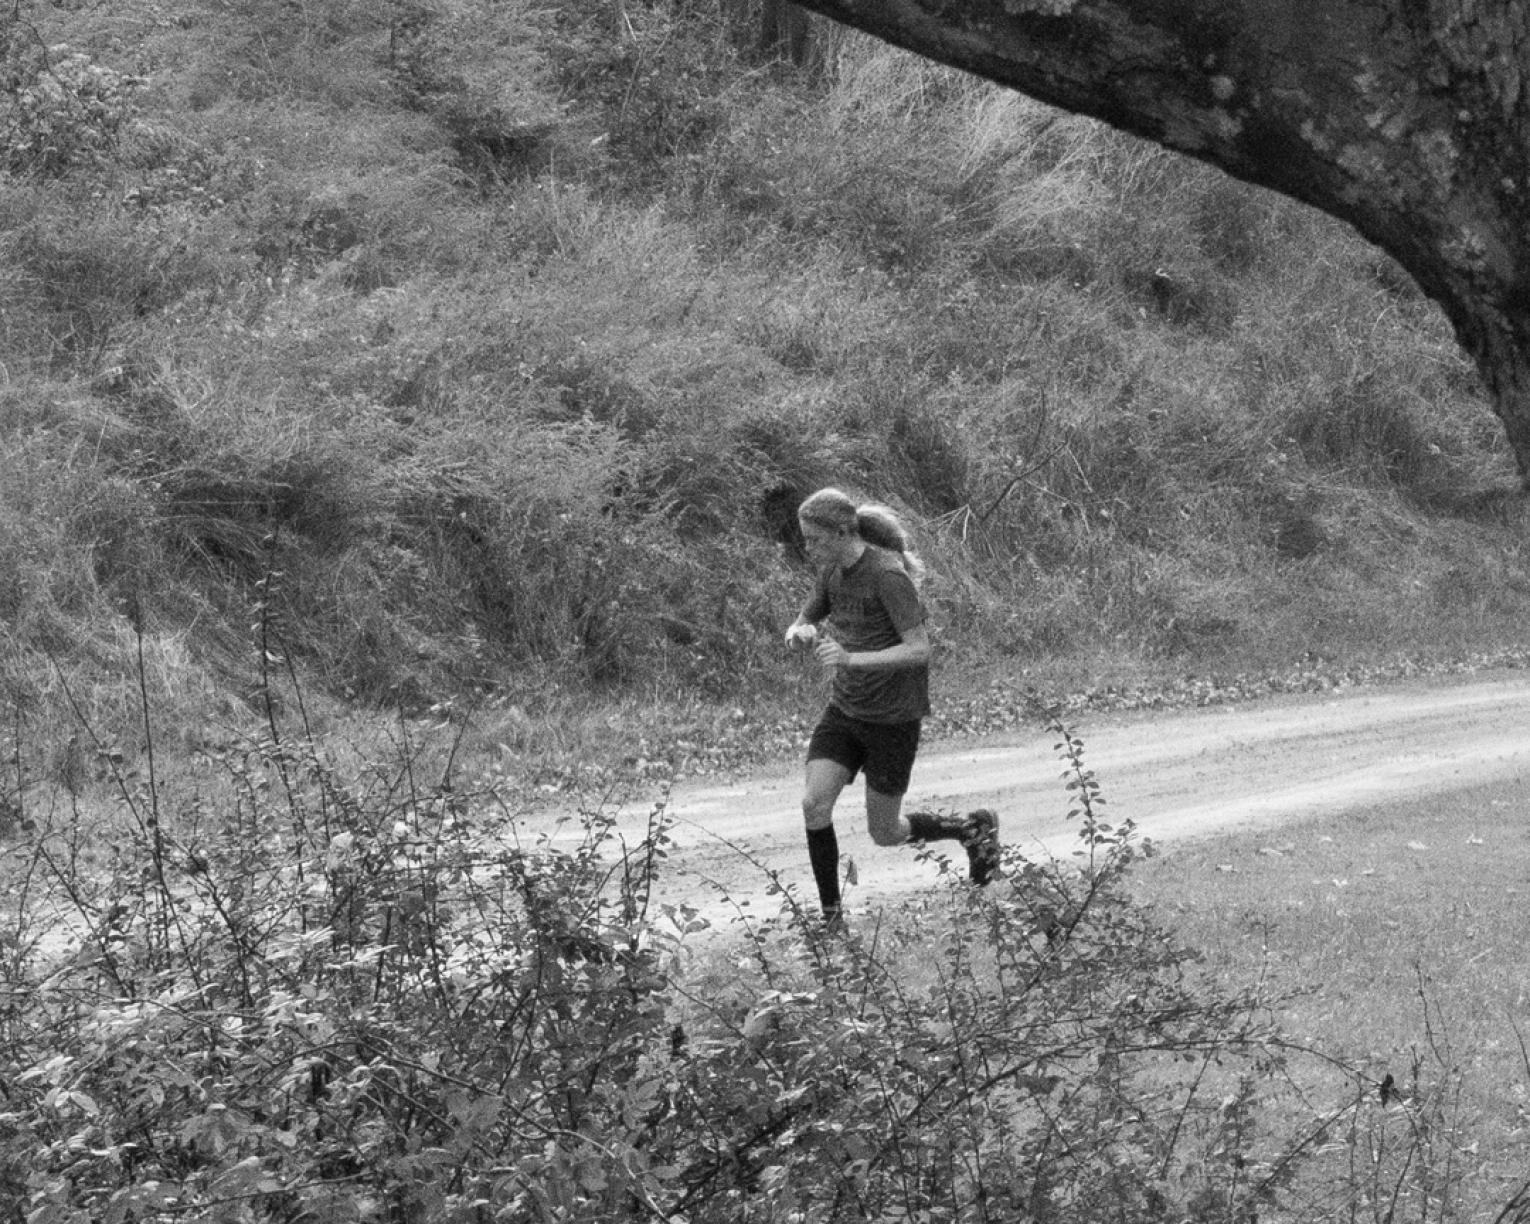 Black and white photo of person jogging along dirt road